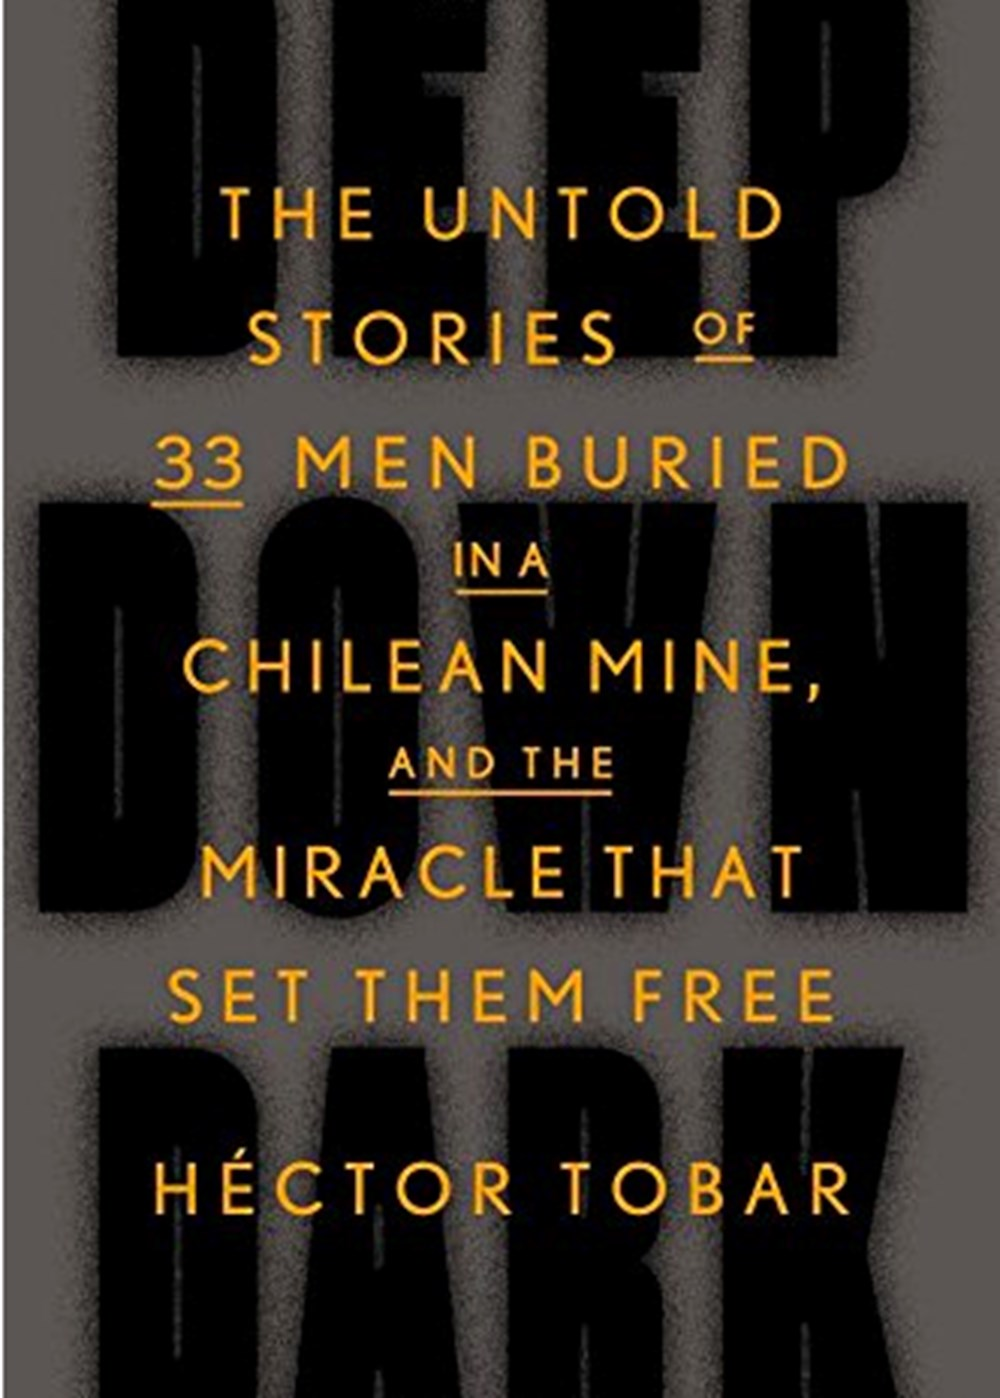 Deep Down Dark The Untold Stories of 33 Men Buried in a Chilean Mine, and the Miracle That Set Them